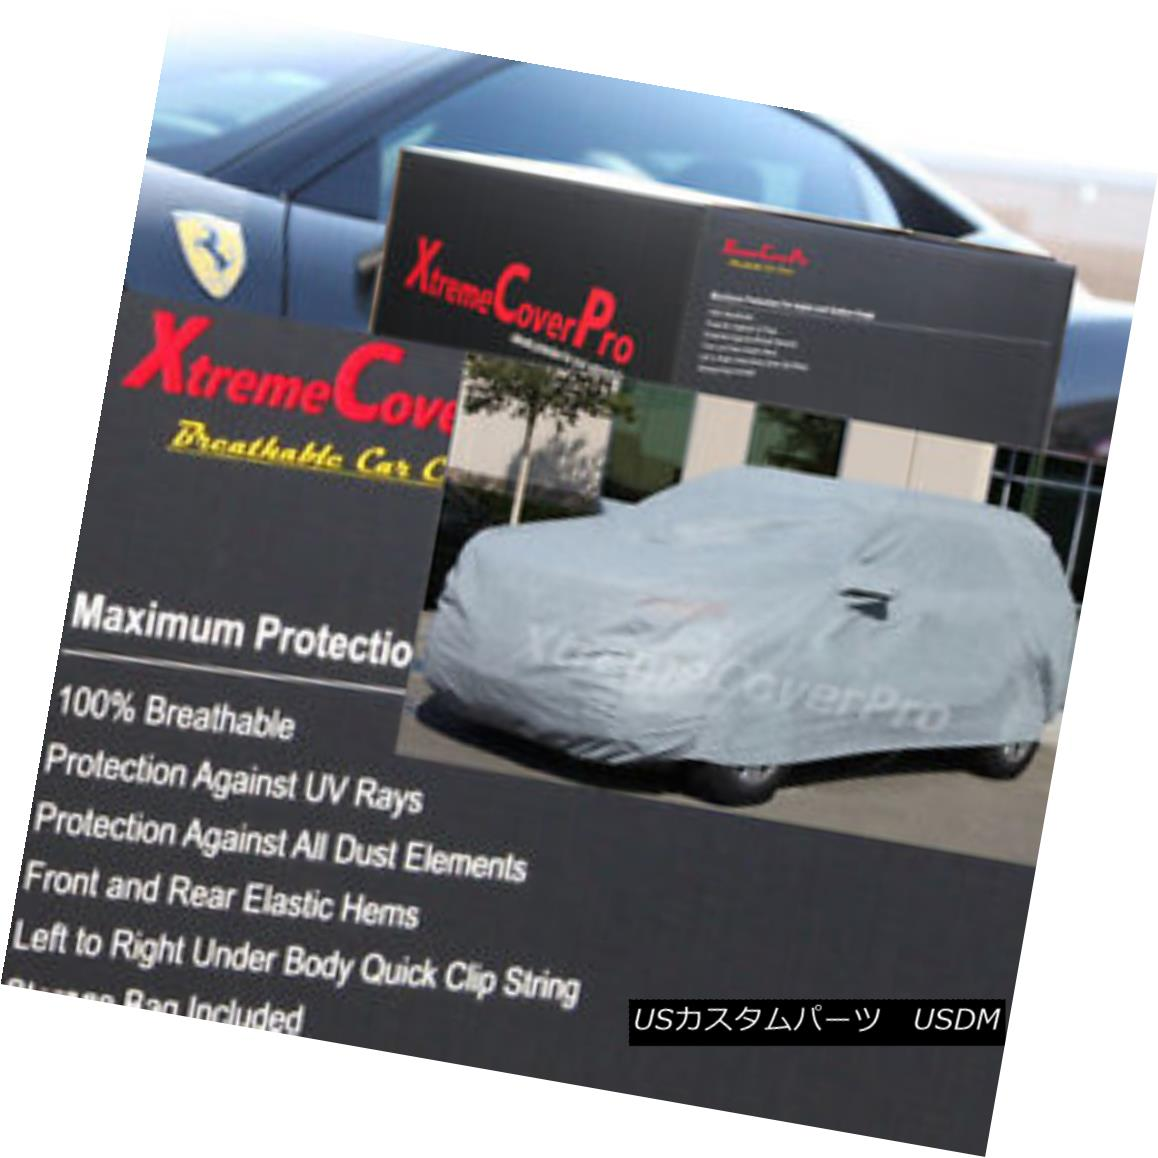 カーカバー 2015 CHRYSLER TOWN & COUNTRY Breathable Car Cover w/Mirror Pockets - Gray 2015 CHRYSLER TOWN& COUNTRY通気性のある車カバー付き/ミラーポケット - グレー